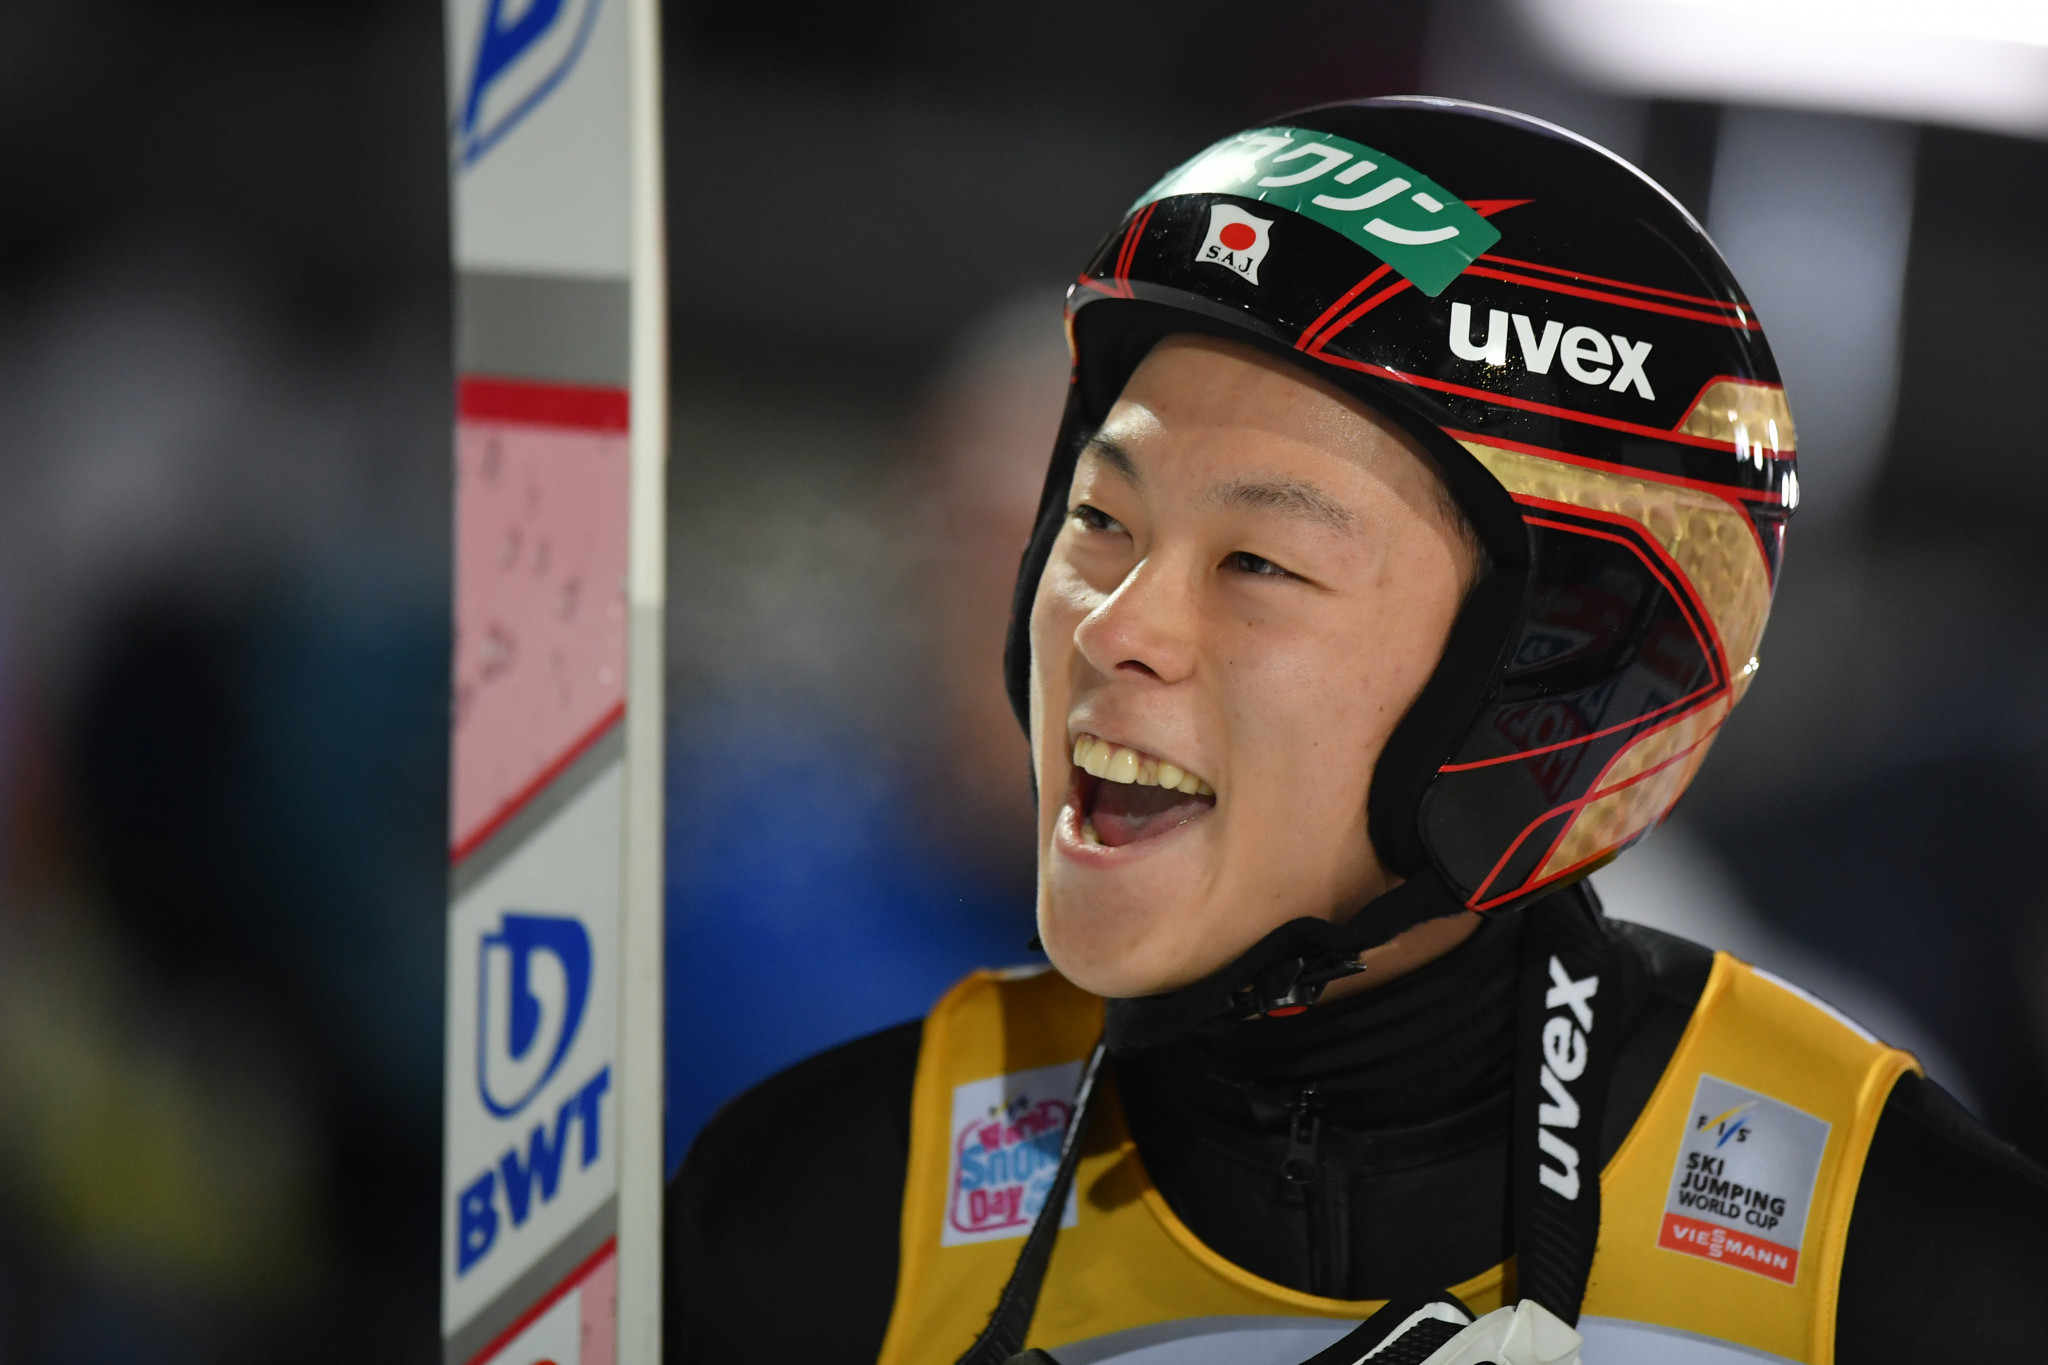 Japan's Kobayashi continues dominant form to win FIS Ski Jumping World Cup event in Oberstdorf